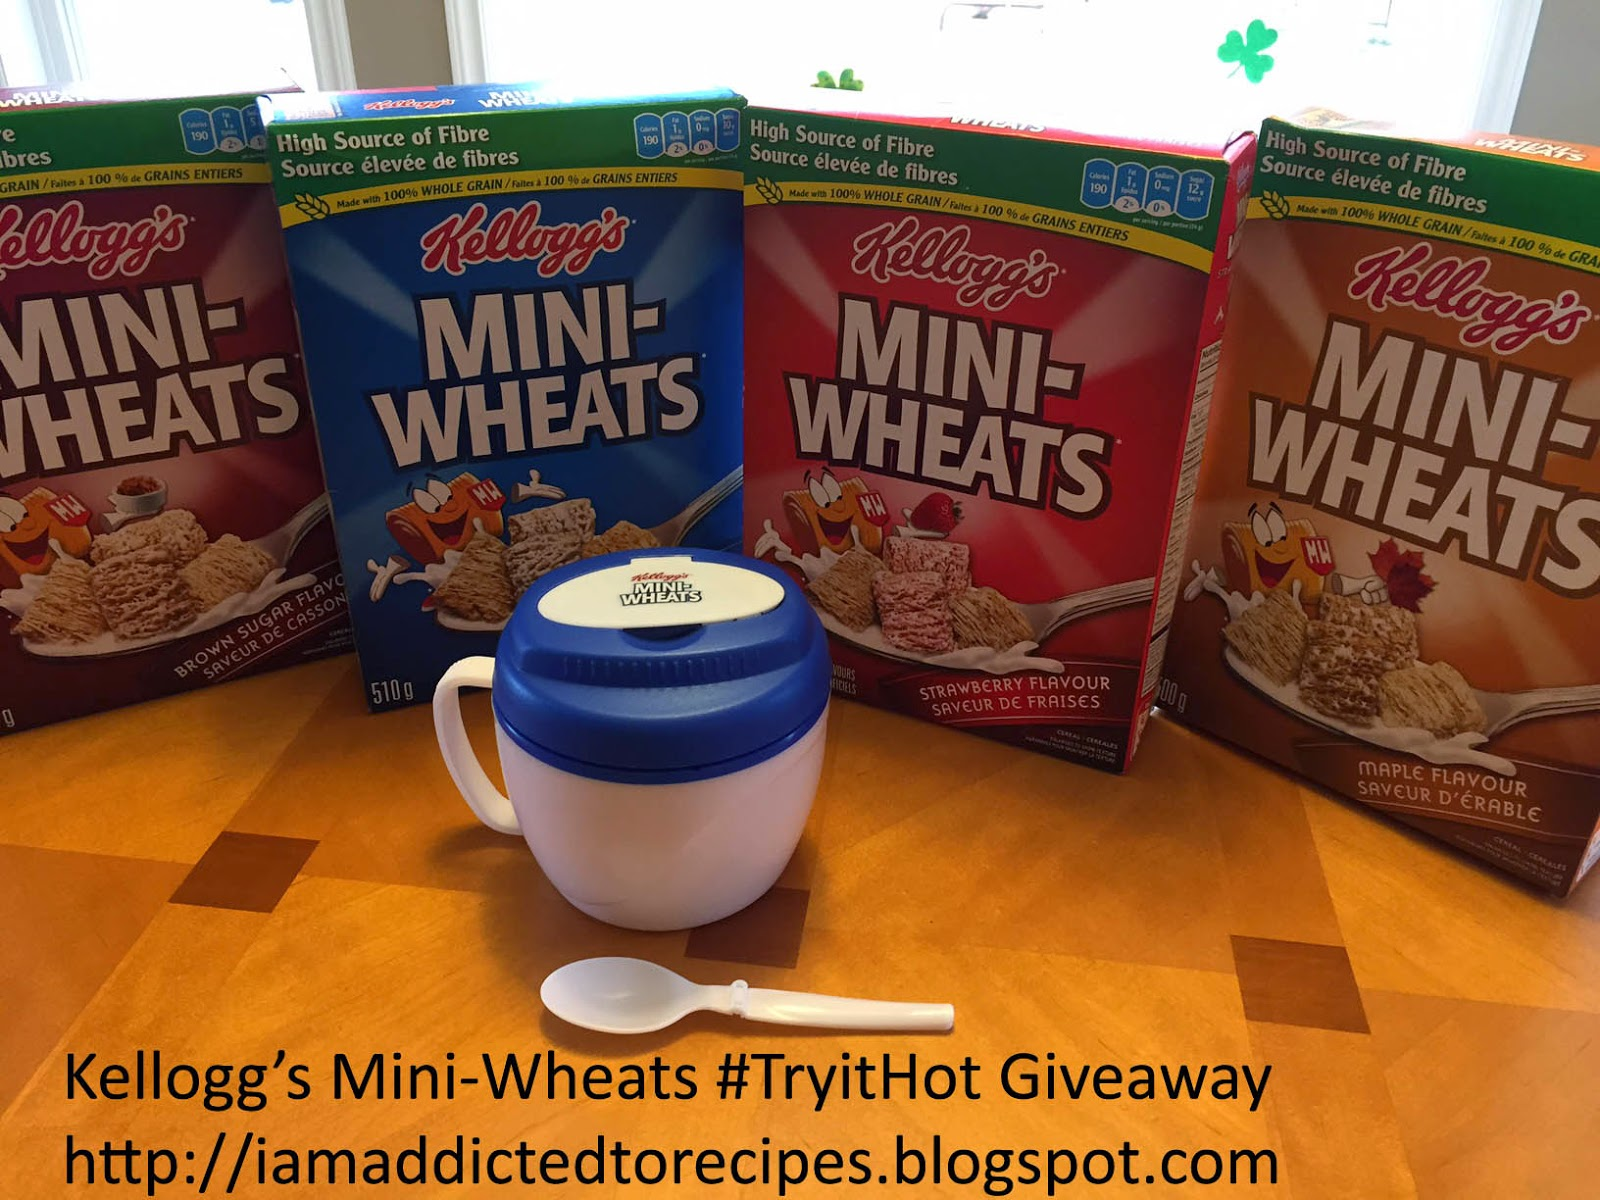 Kellogg's Mini-Wheats #TryitHot Giveaway | Addicted to Recipes